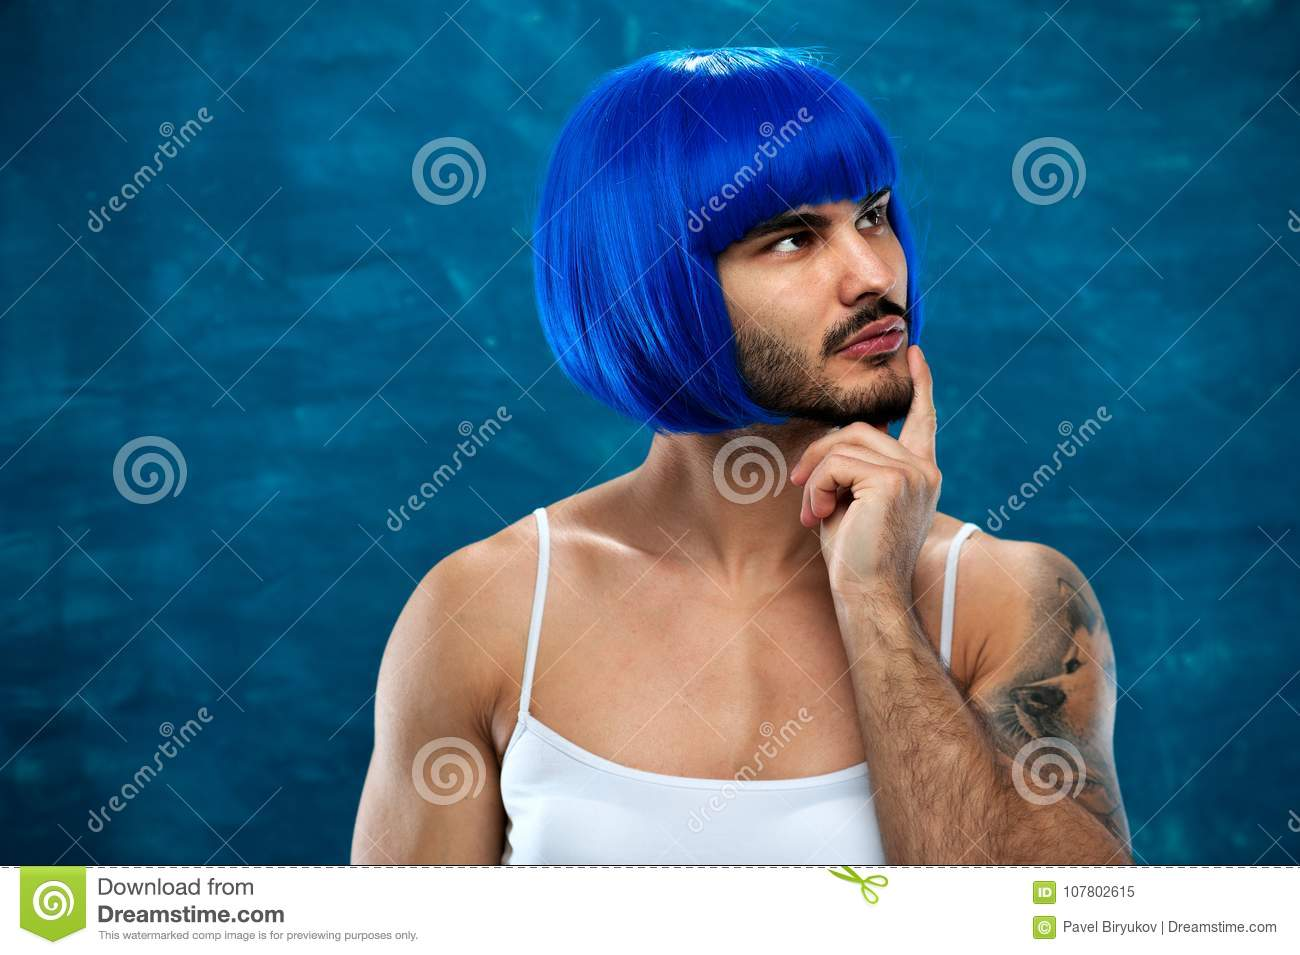 Attractive Cross Dressing Male Person In Blue Wig Stock Image ... 4a590fcd4